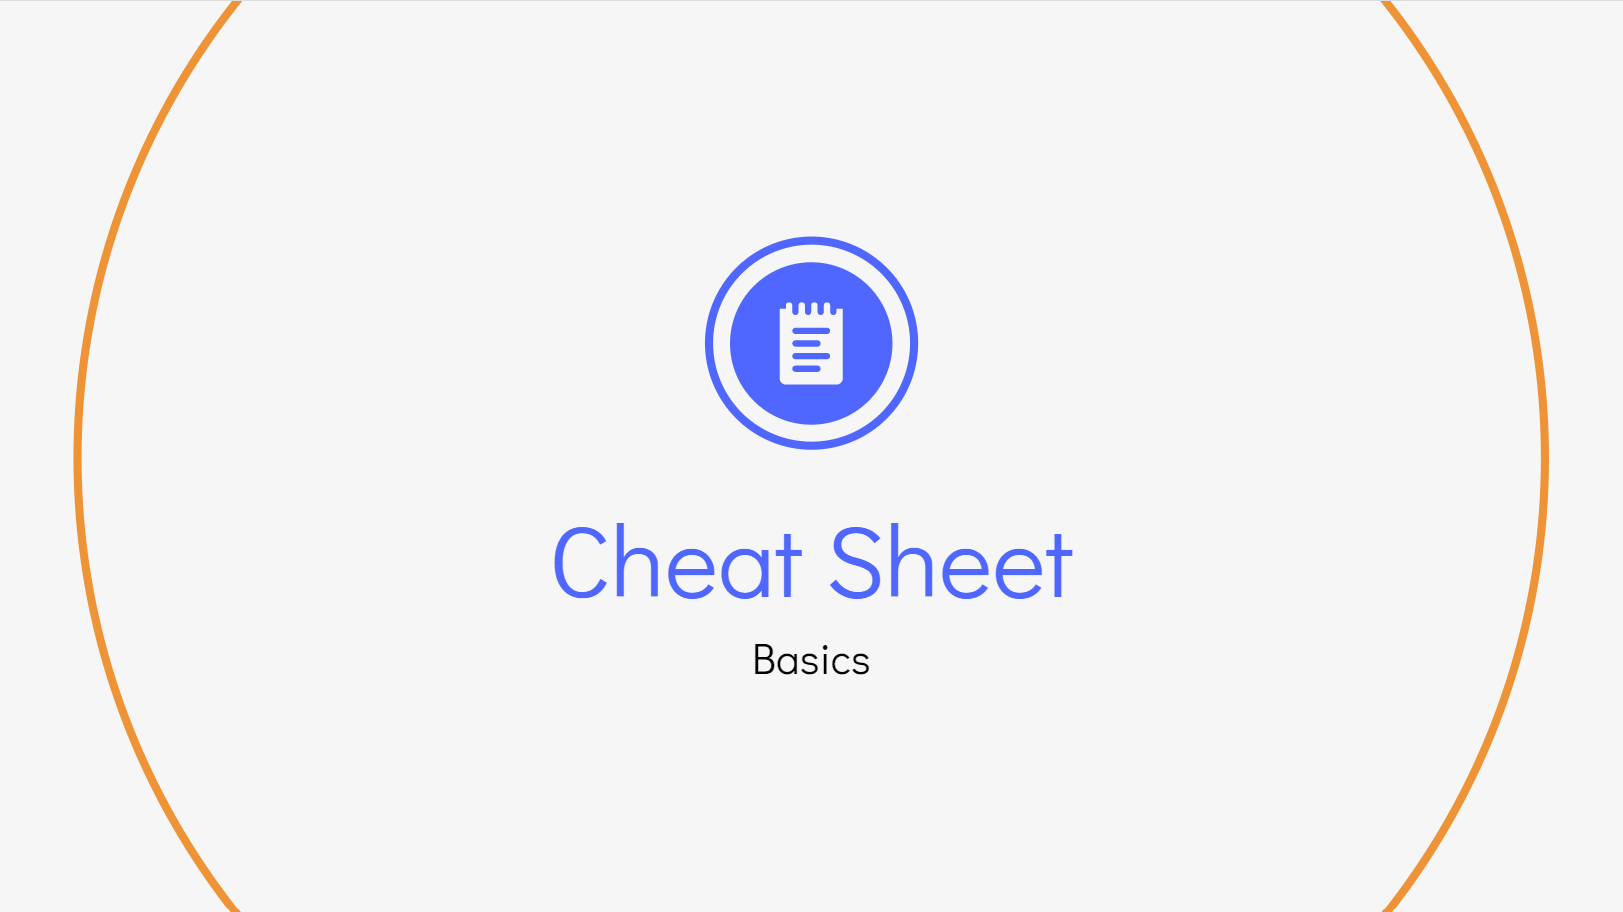 Cheatsheet template is prepared for content creators to create freebies quickly for their audience. The best thing this template includes is that creators can generate leads by their documents. After deciding on your niche prepare a list for starters and kickstart your document with the help of this cheatsheet template!